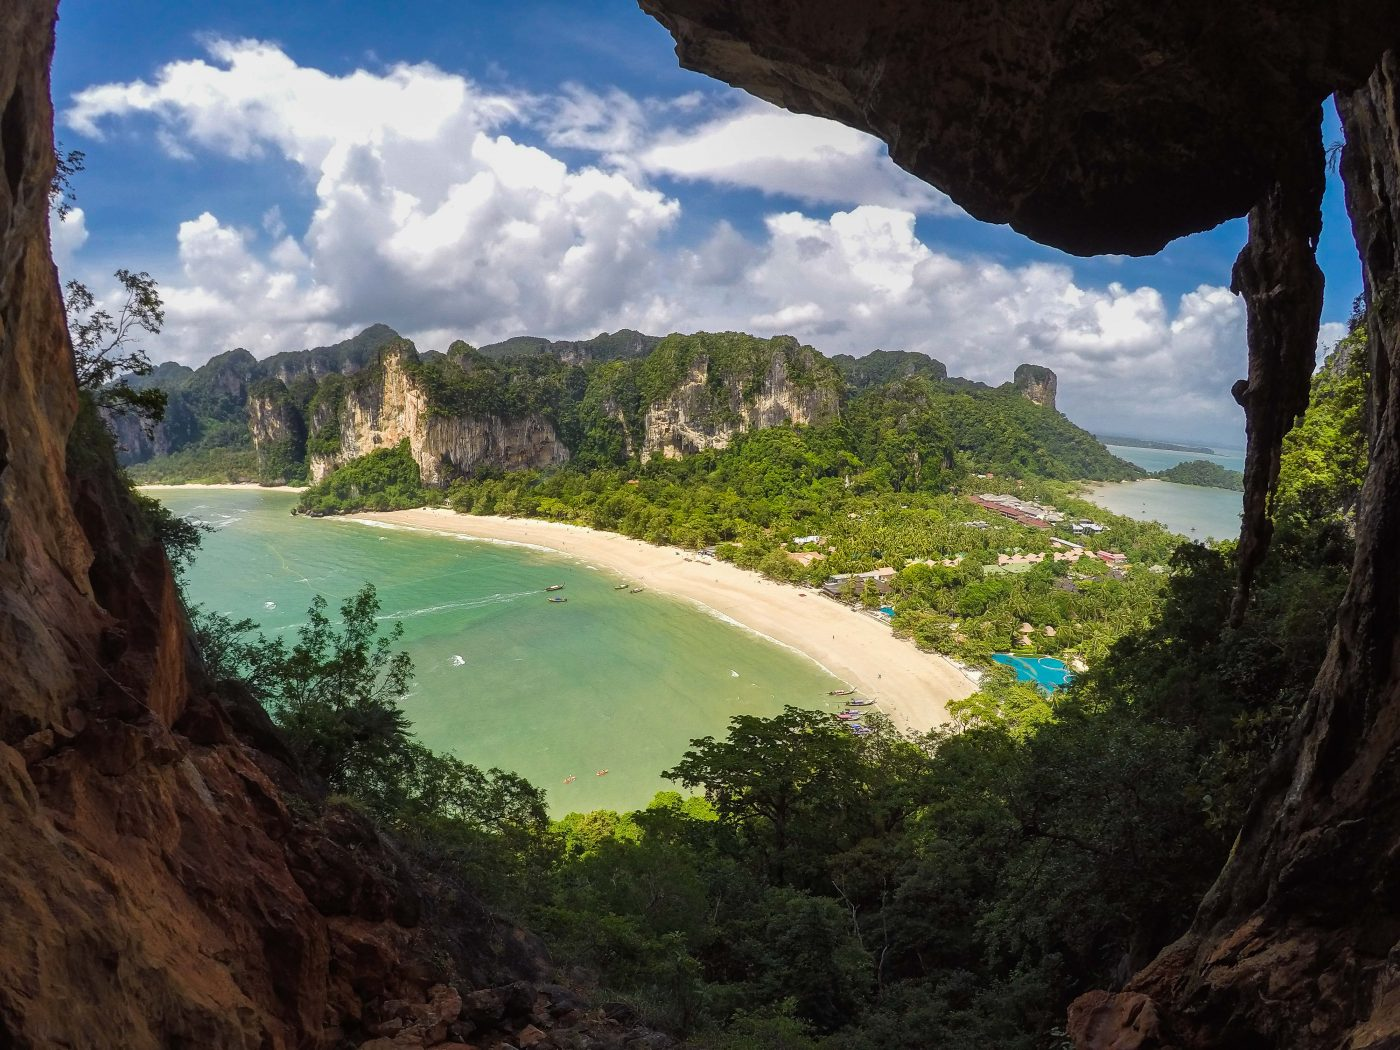 AO NANG TO RAILAY BEACH KAYAK JOURNEY - Journey Era